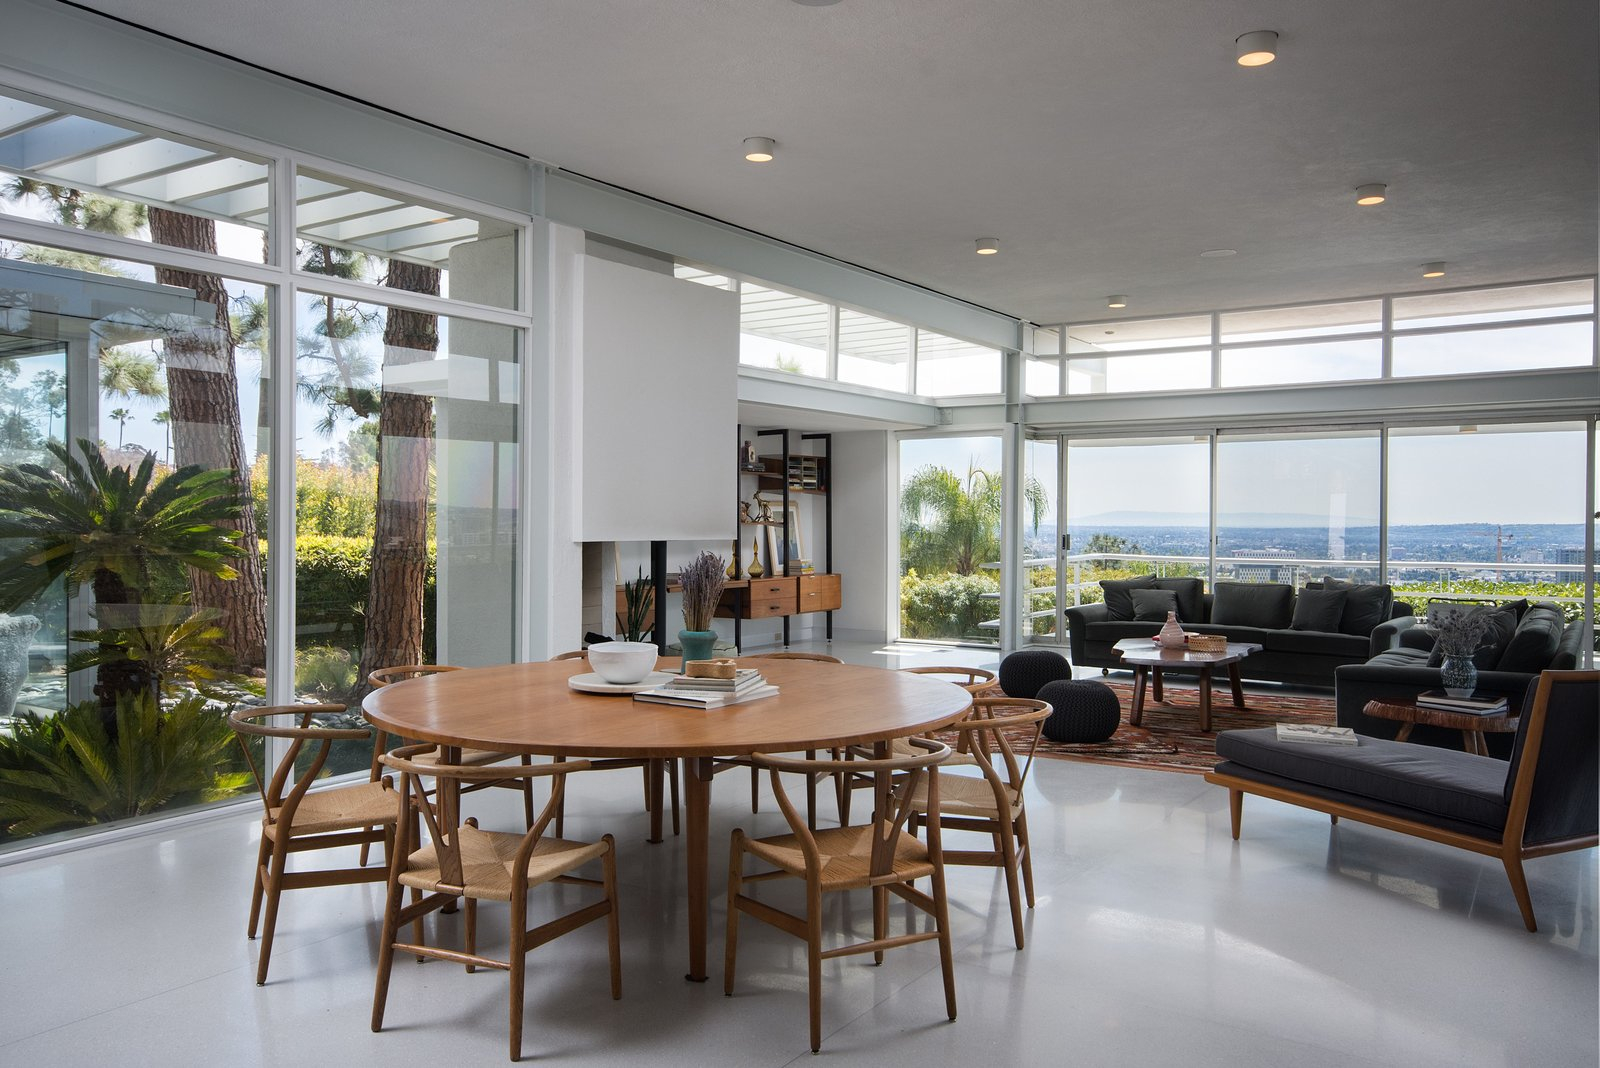 Dining, Ceiling, Table, Corner, Chair, and Wood Burning Every corner of the home offers stunning views.  Dining Corner Photos from Rooney Mara Asks $3.45M For a Restored Midcentury Stunner in L.A.